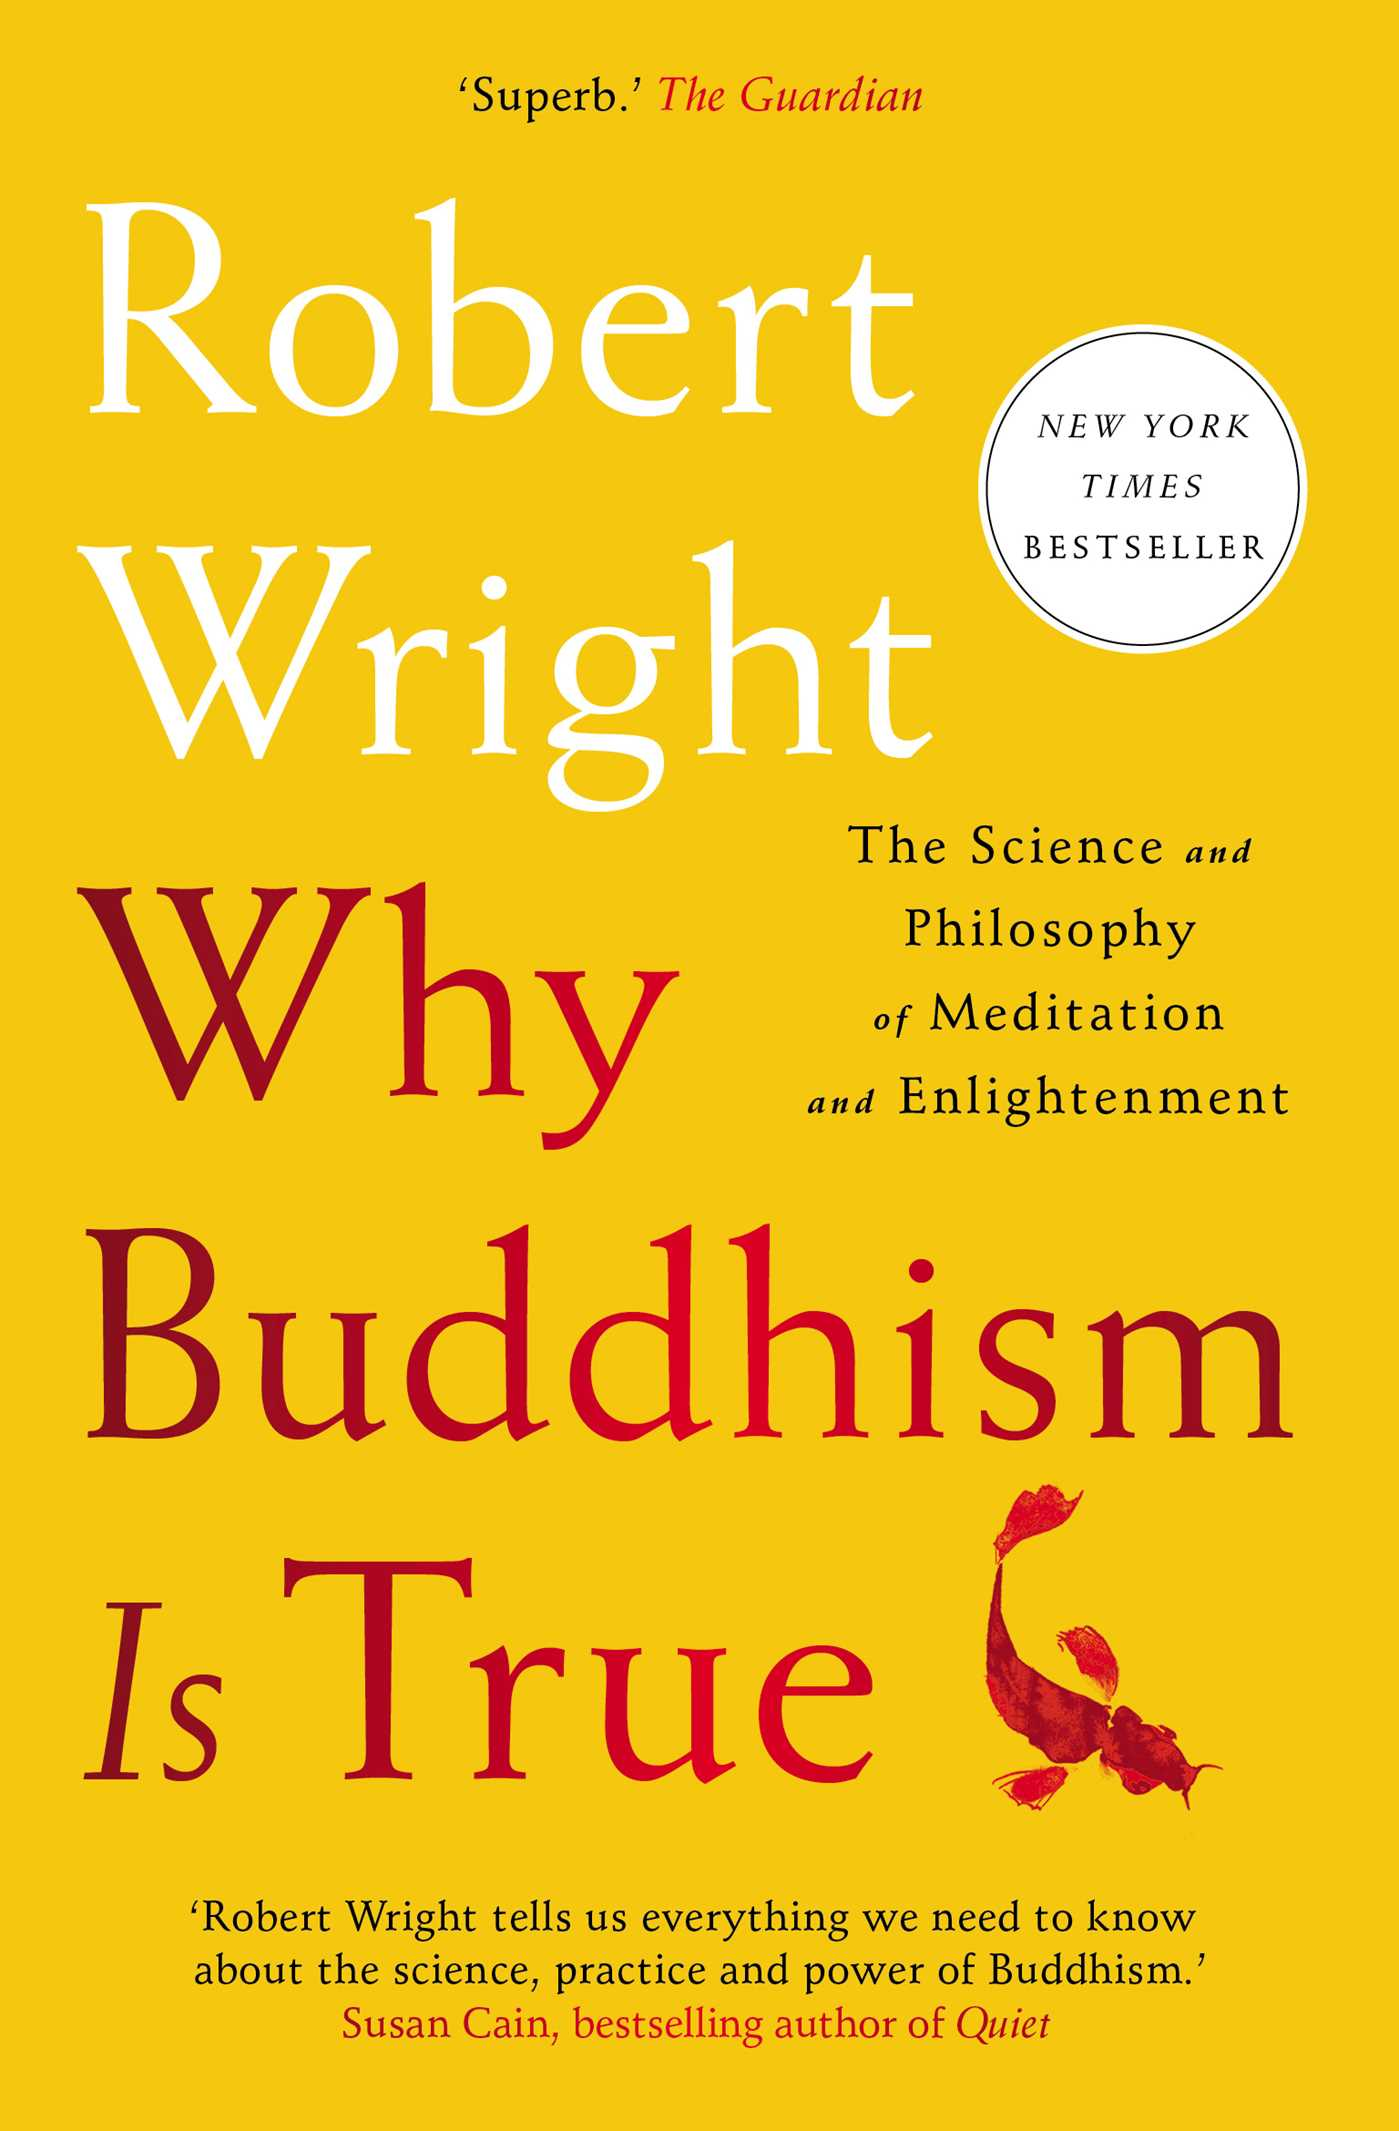 Why buddhism is true 9781439195475 hr